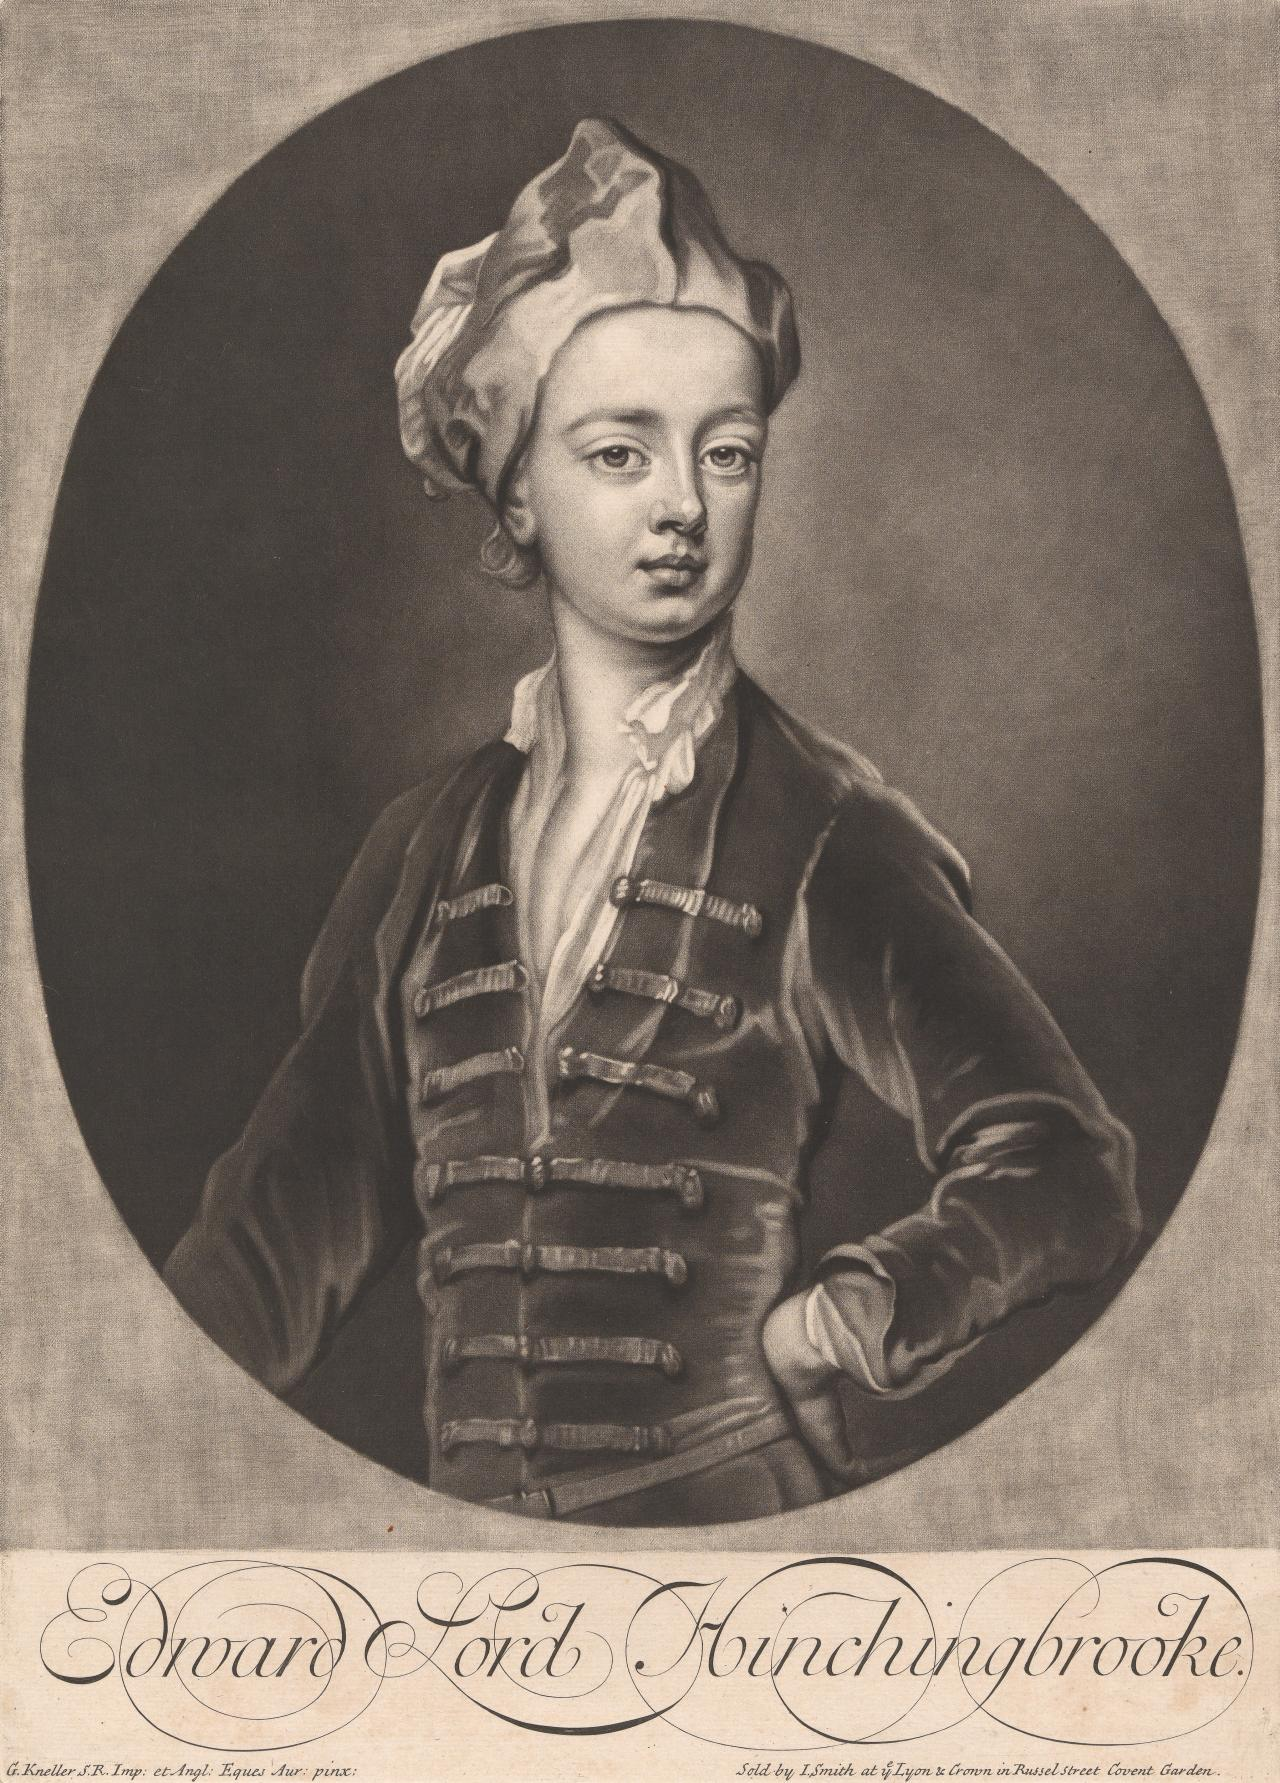 Edward, Lord Hinchingbrooke